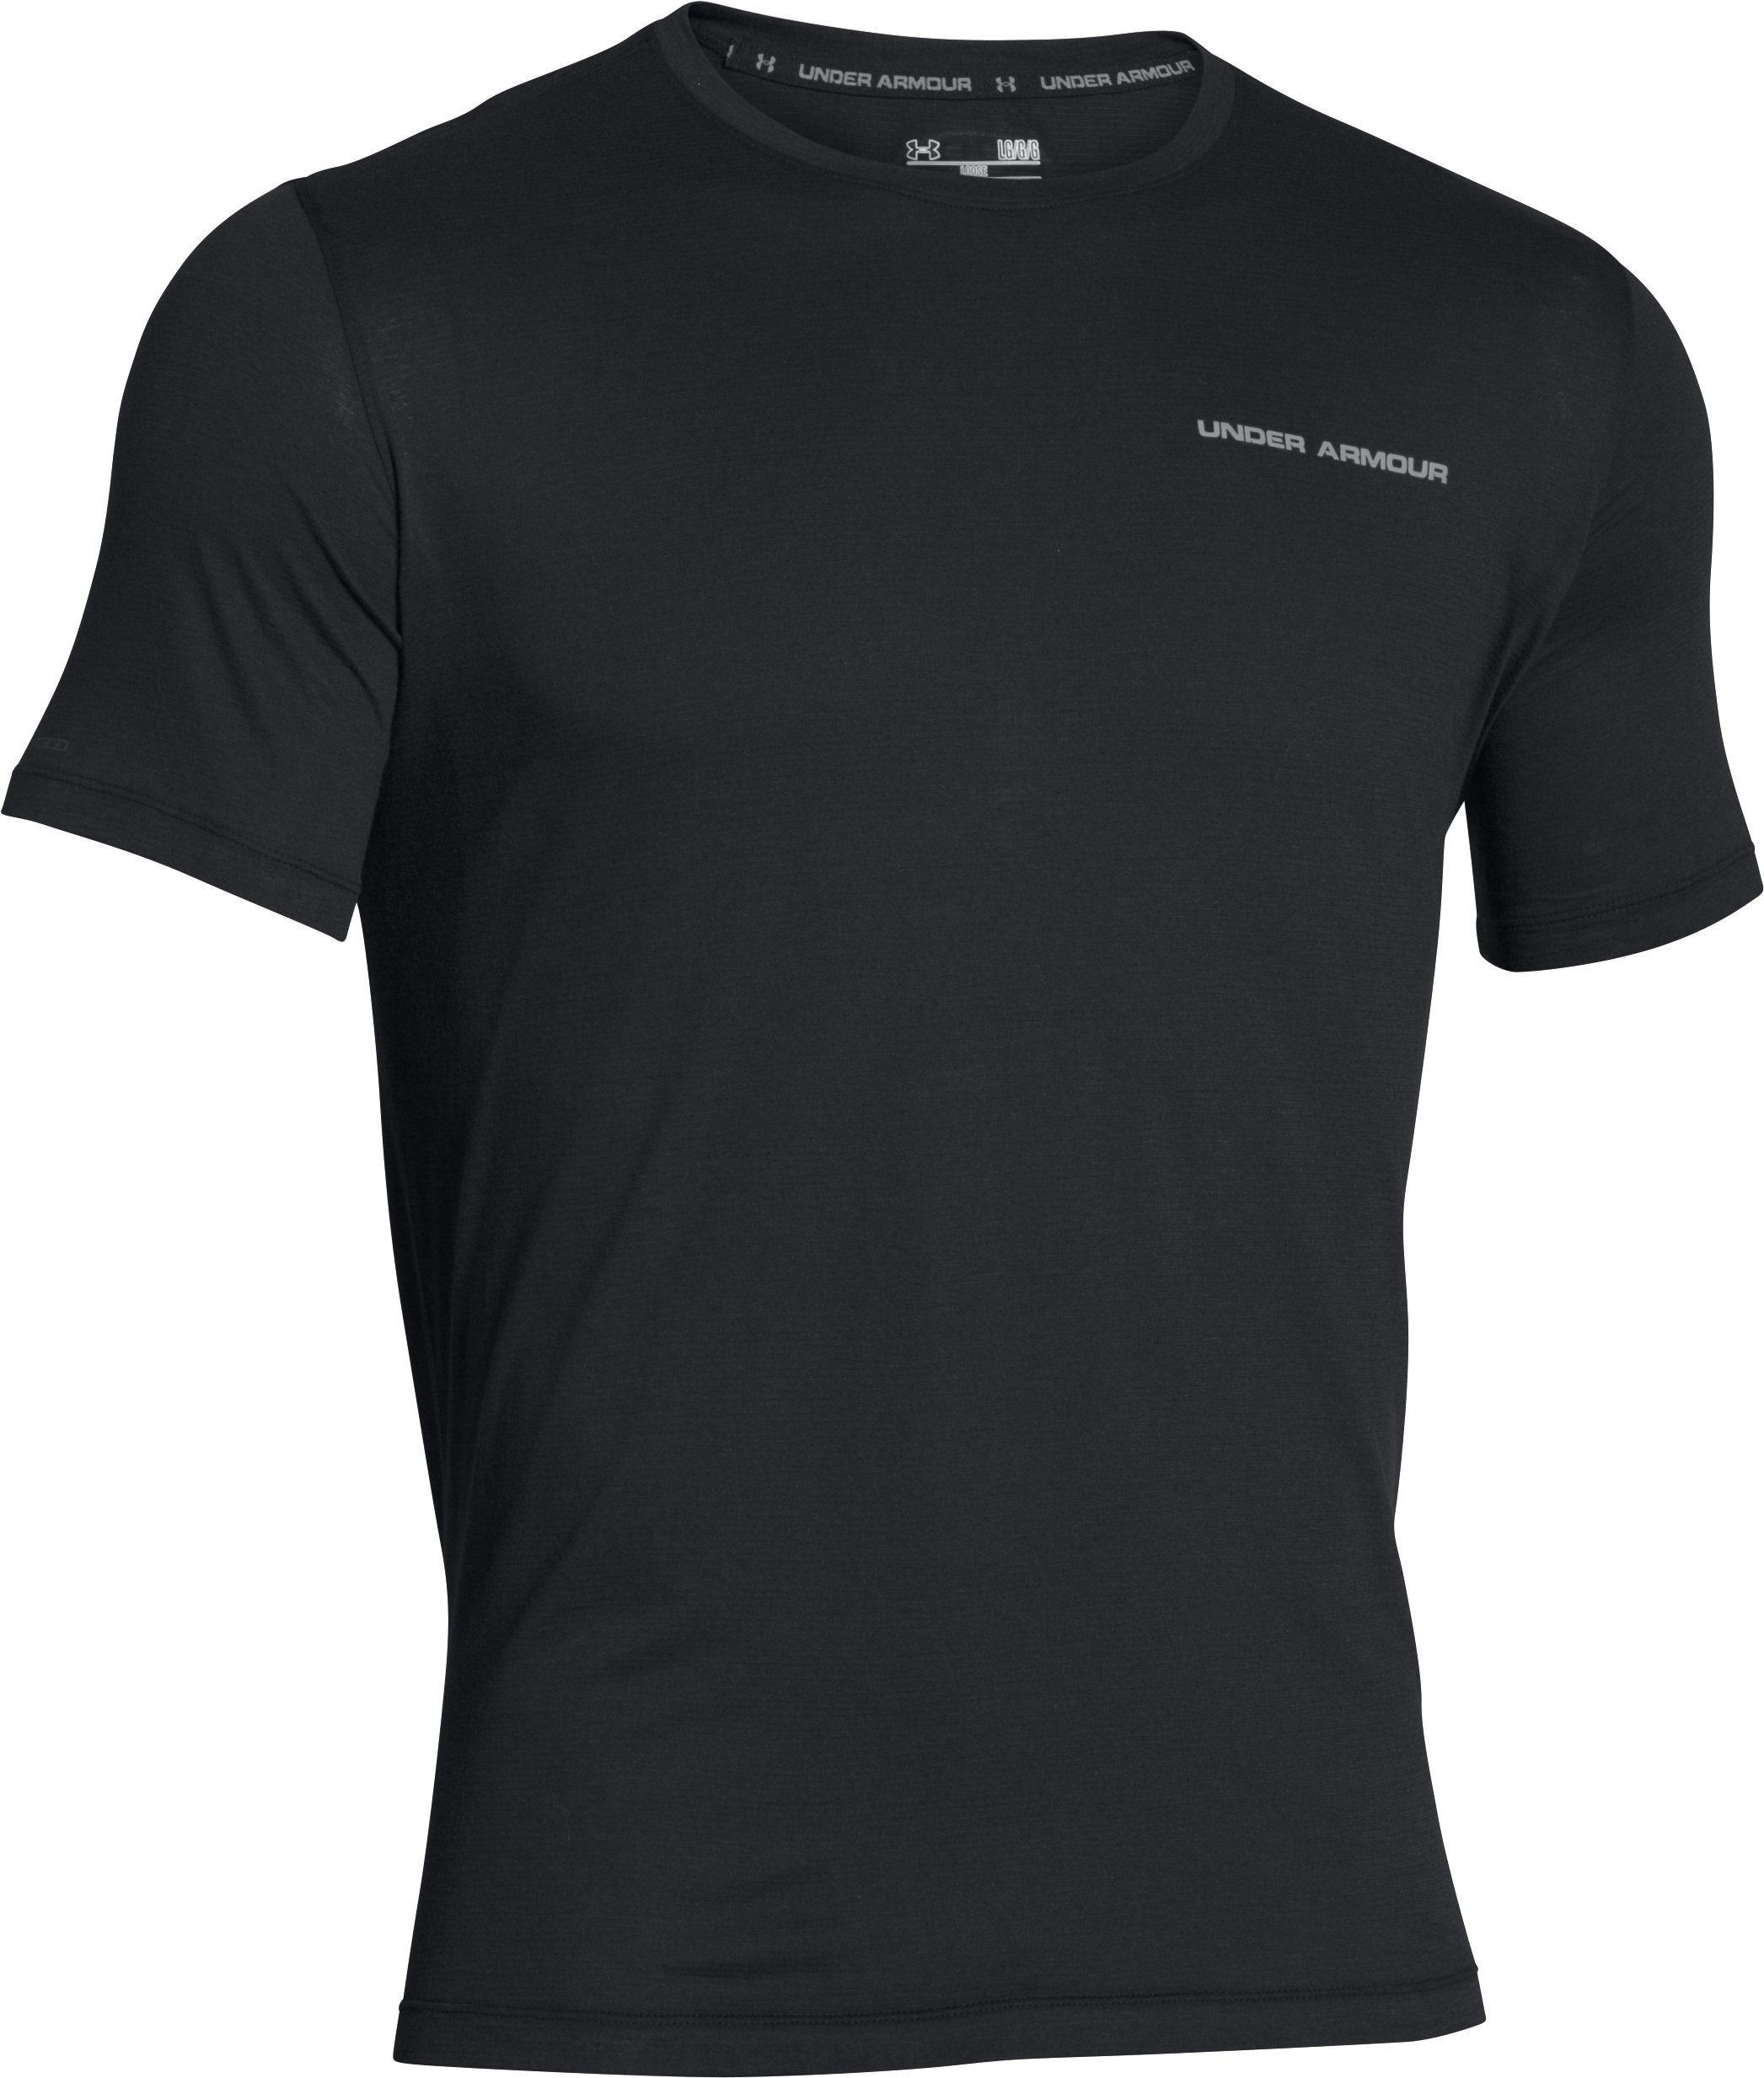 Men's Charged Cotton® T-Shirt, Black , undefined